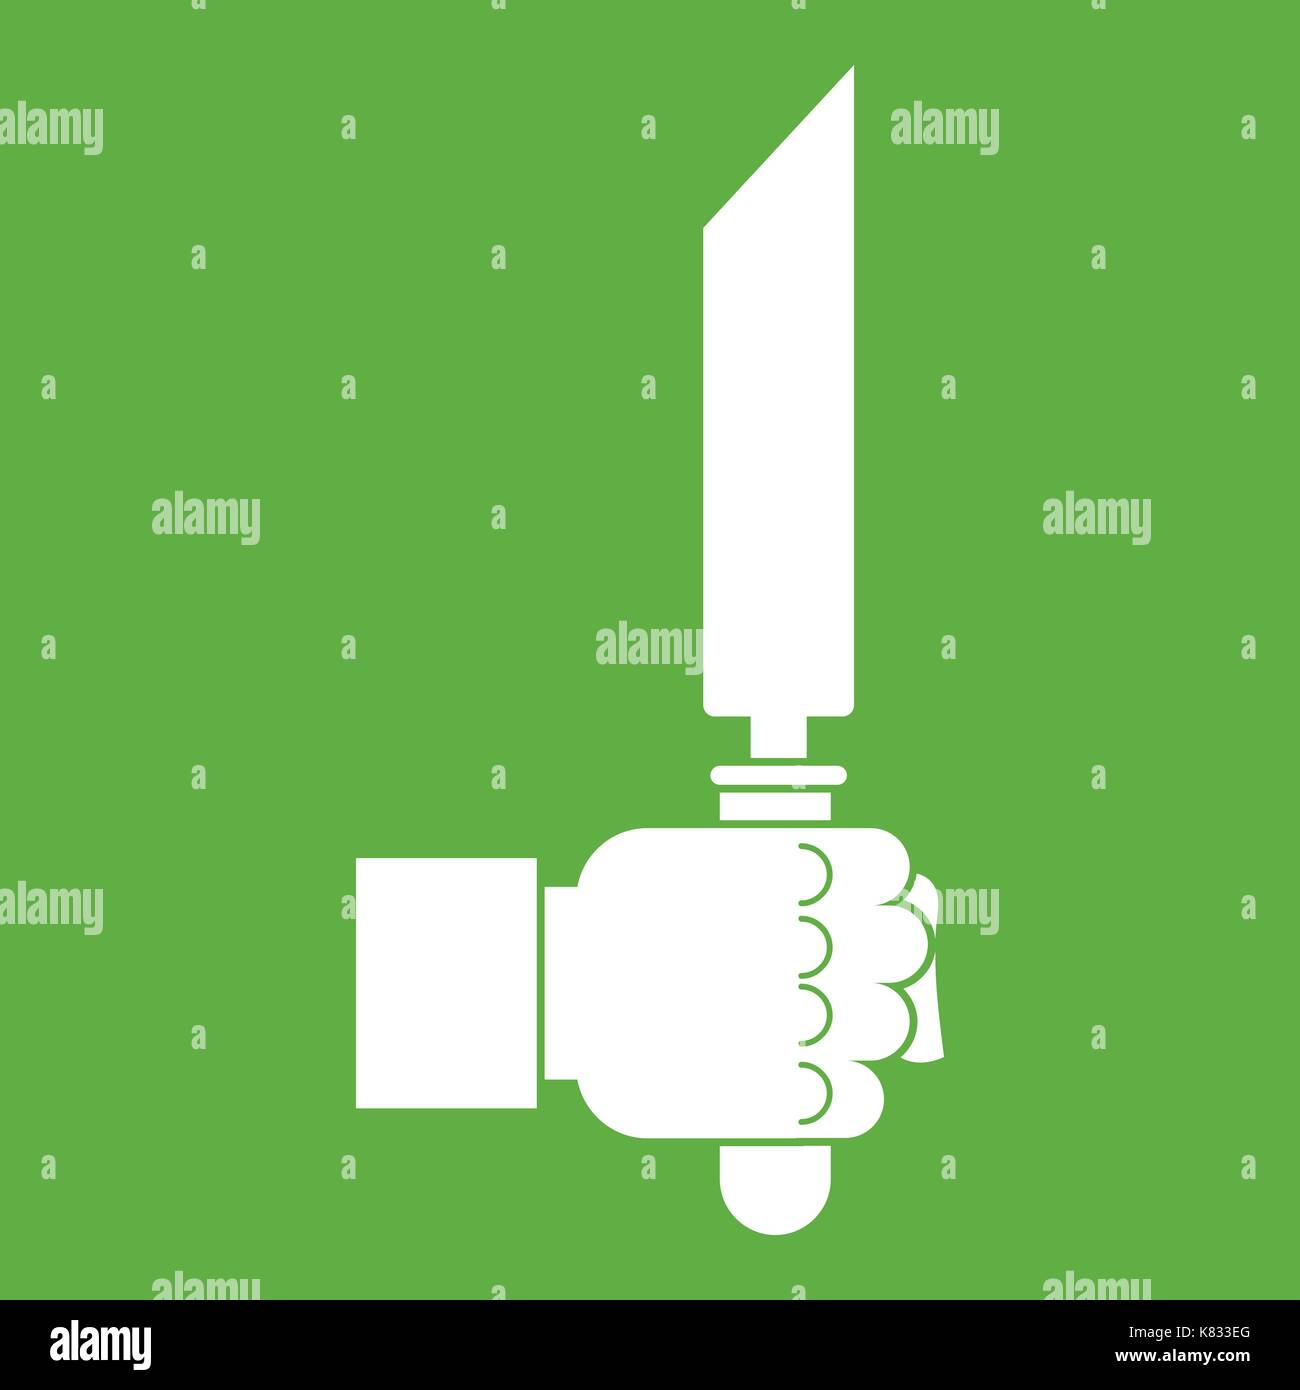 Pincer or plier in man hand icon green - Stock Image